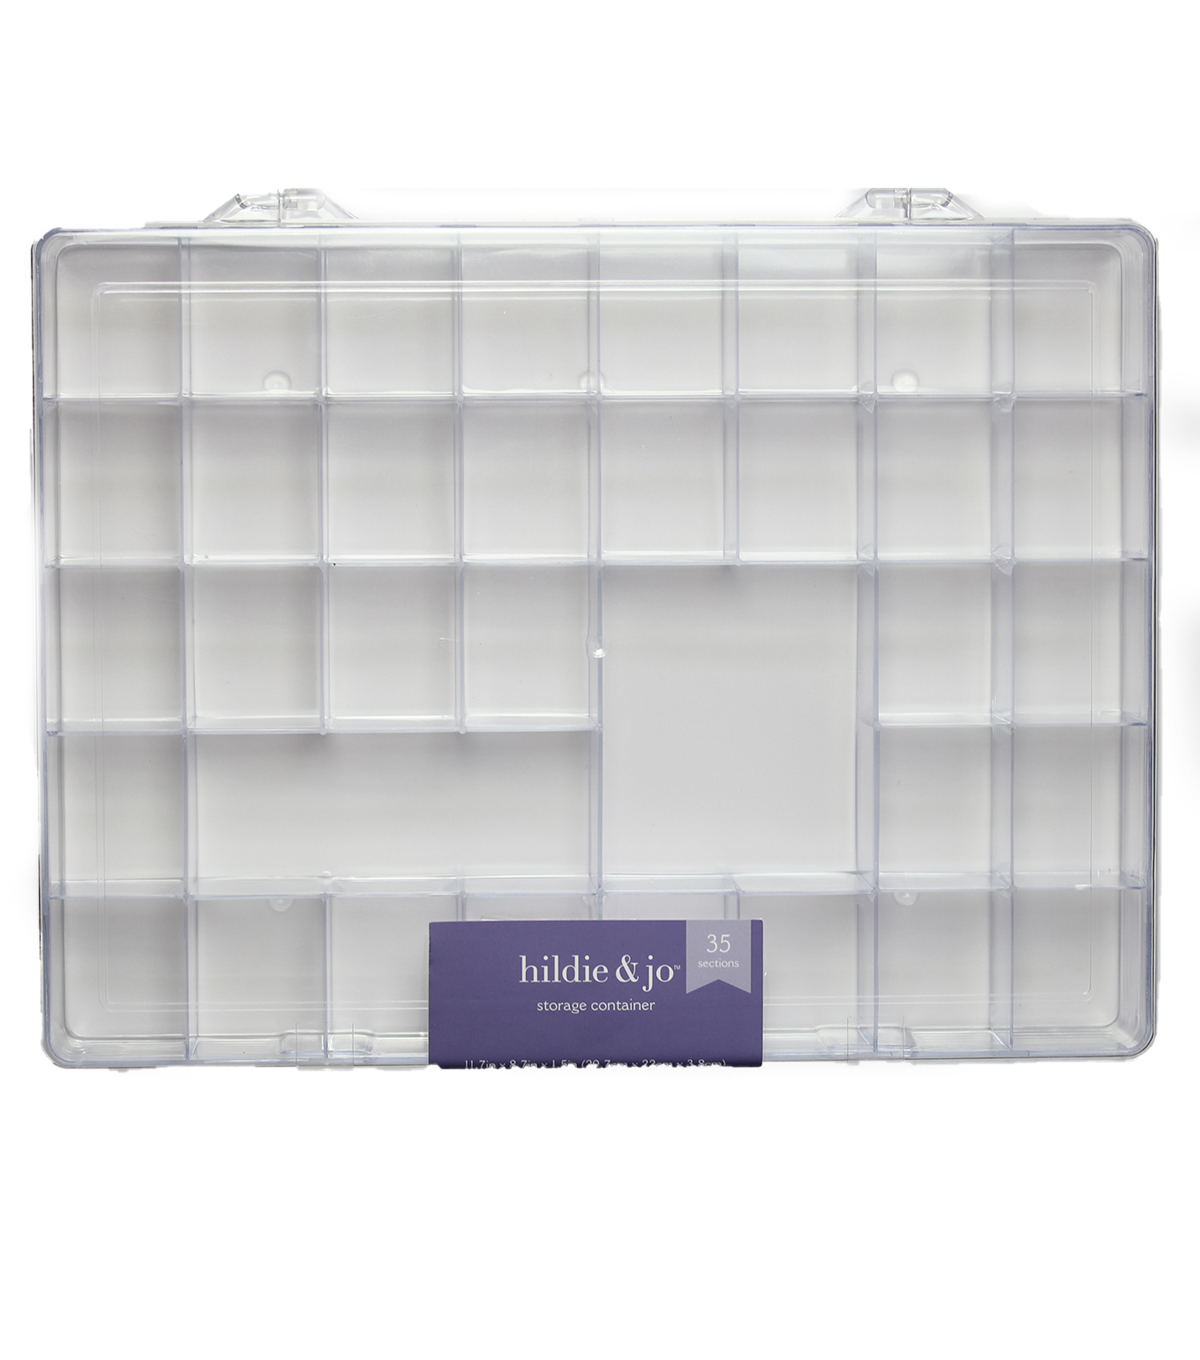 Darice Plastic Storage Box With 35 Compartment